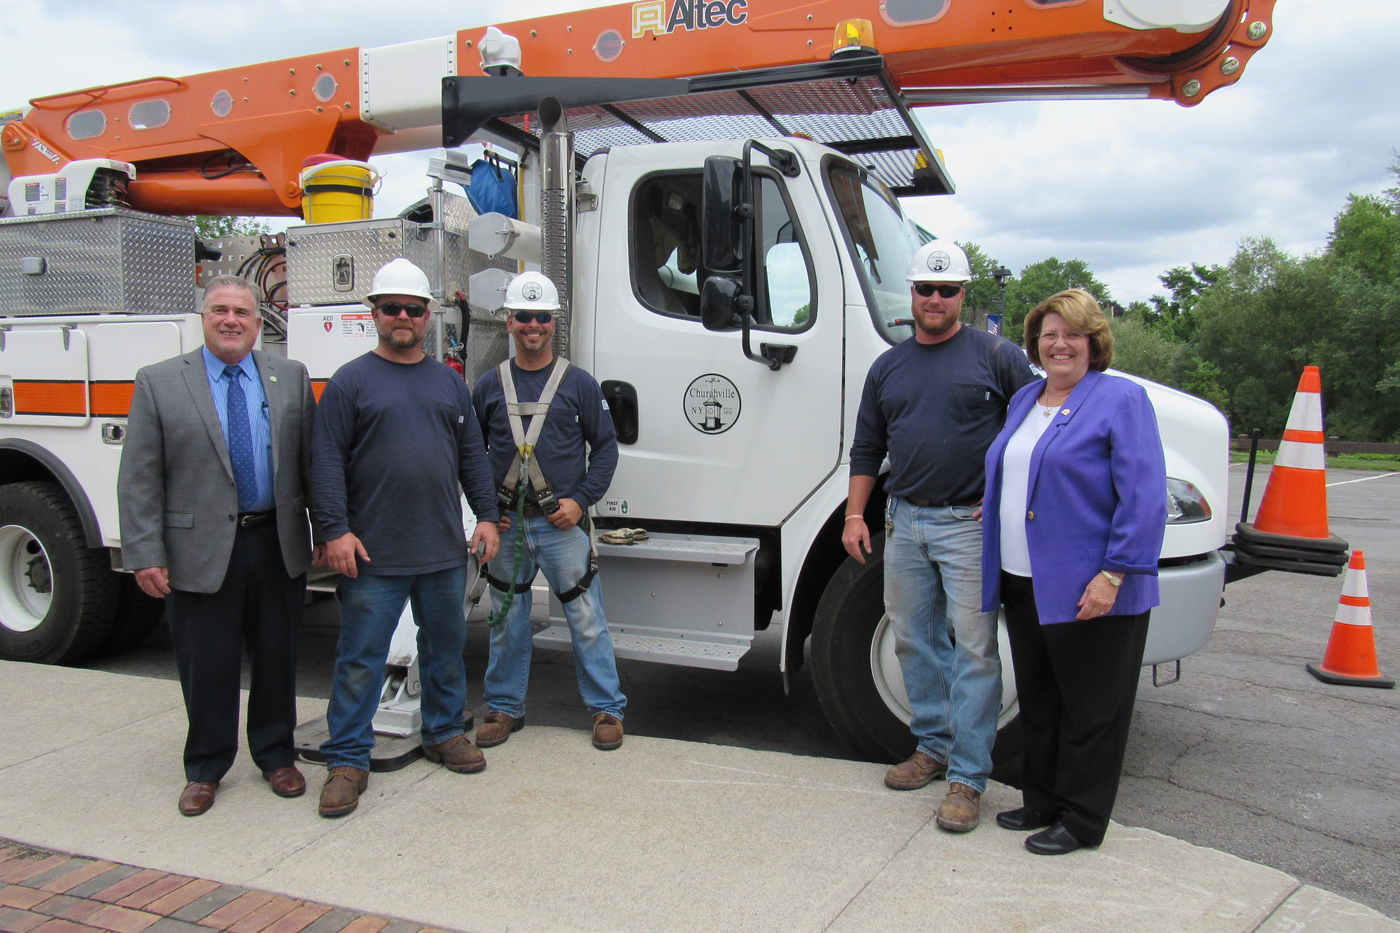 Churchville Municipal Electric linemen pose with local leaders outside the Village Offices in Churchville (l-r): Monroe County Legislator Steve Brew, Ken Yoffredo, Ed Rivers, Adam Hettis and Mayor Nancy Steedman. K. Gabalski photo